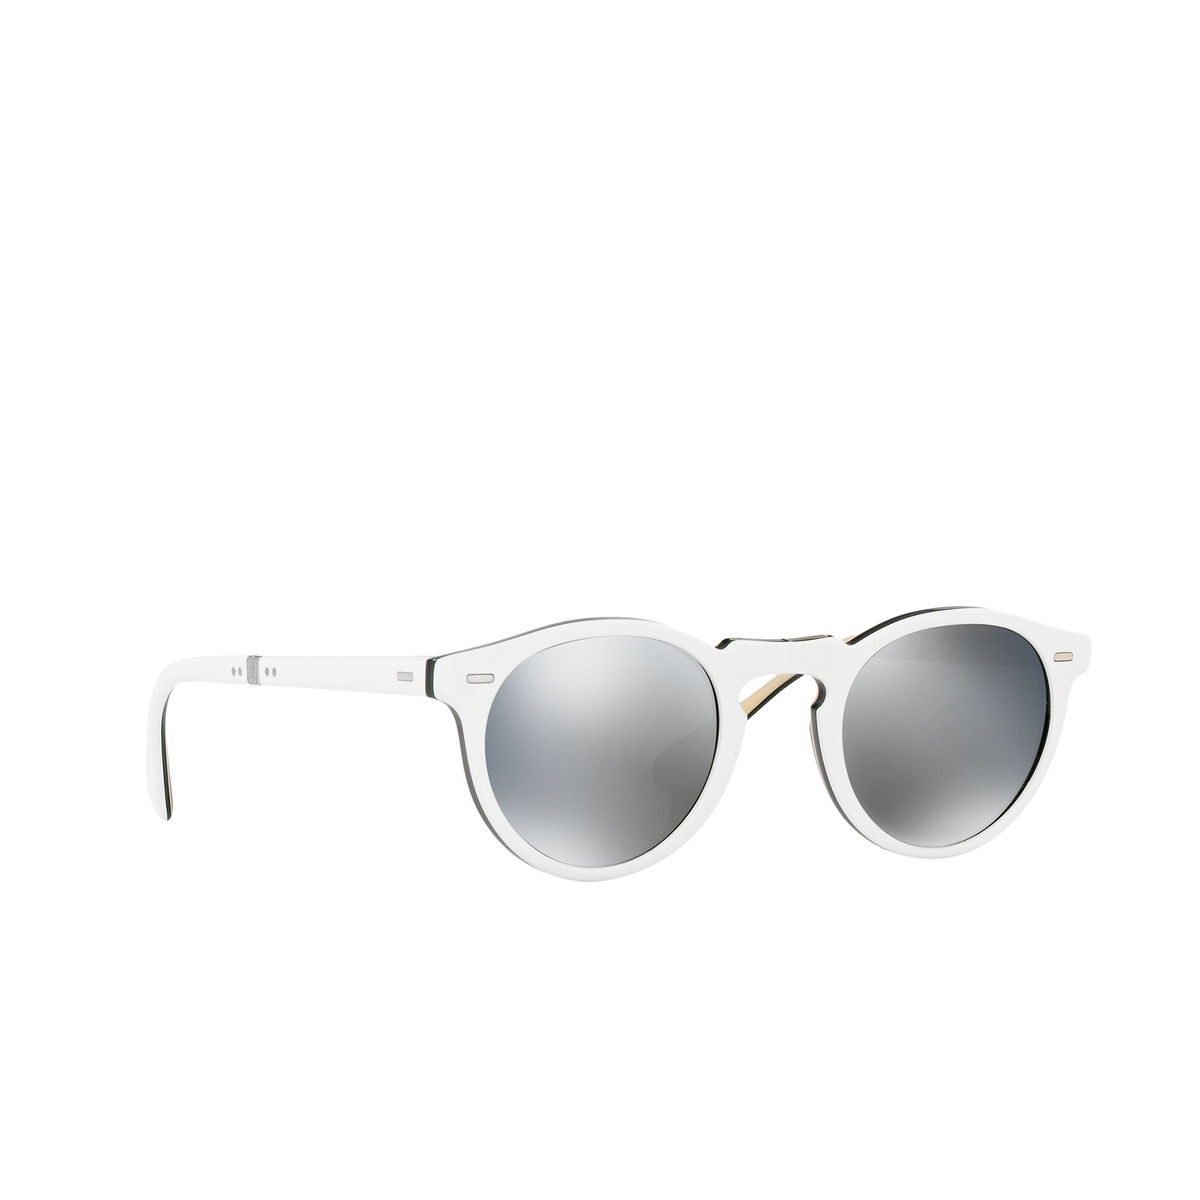 Oliver Peoples® Round Sunglasses: Gregory Peck 1962 OV5456SU color White 168740 - three-quarters view.